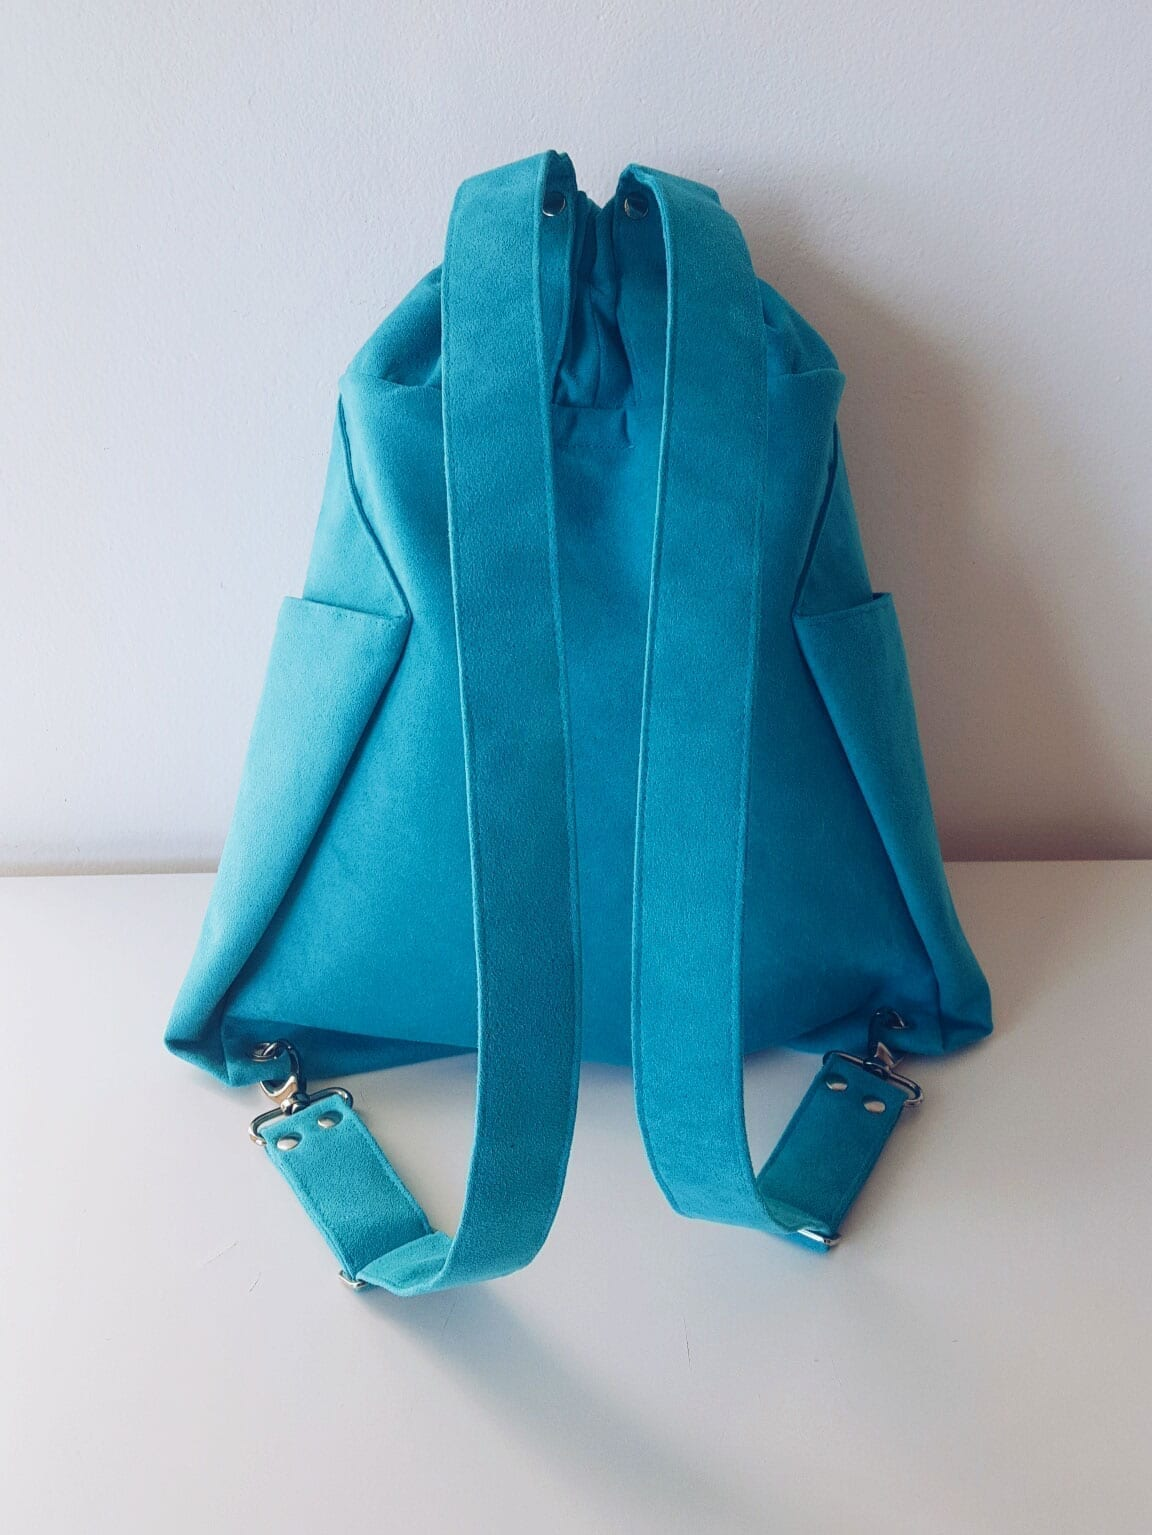 ORIGAMI Backpack_Turquoise (4)